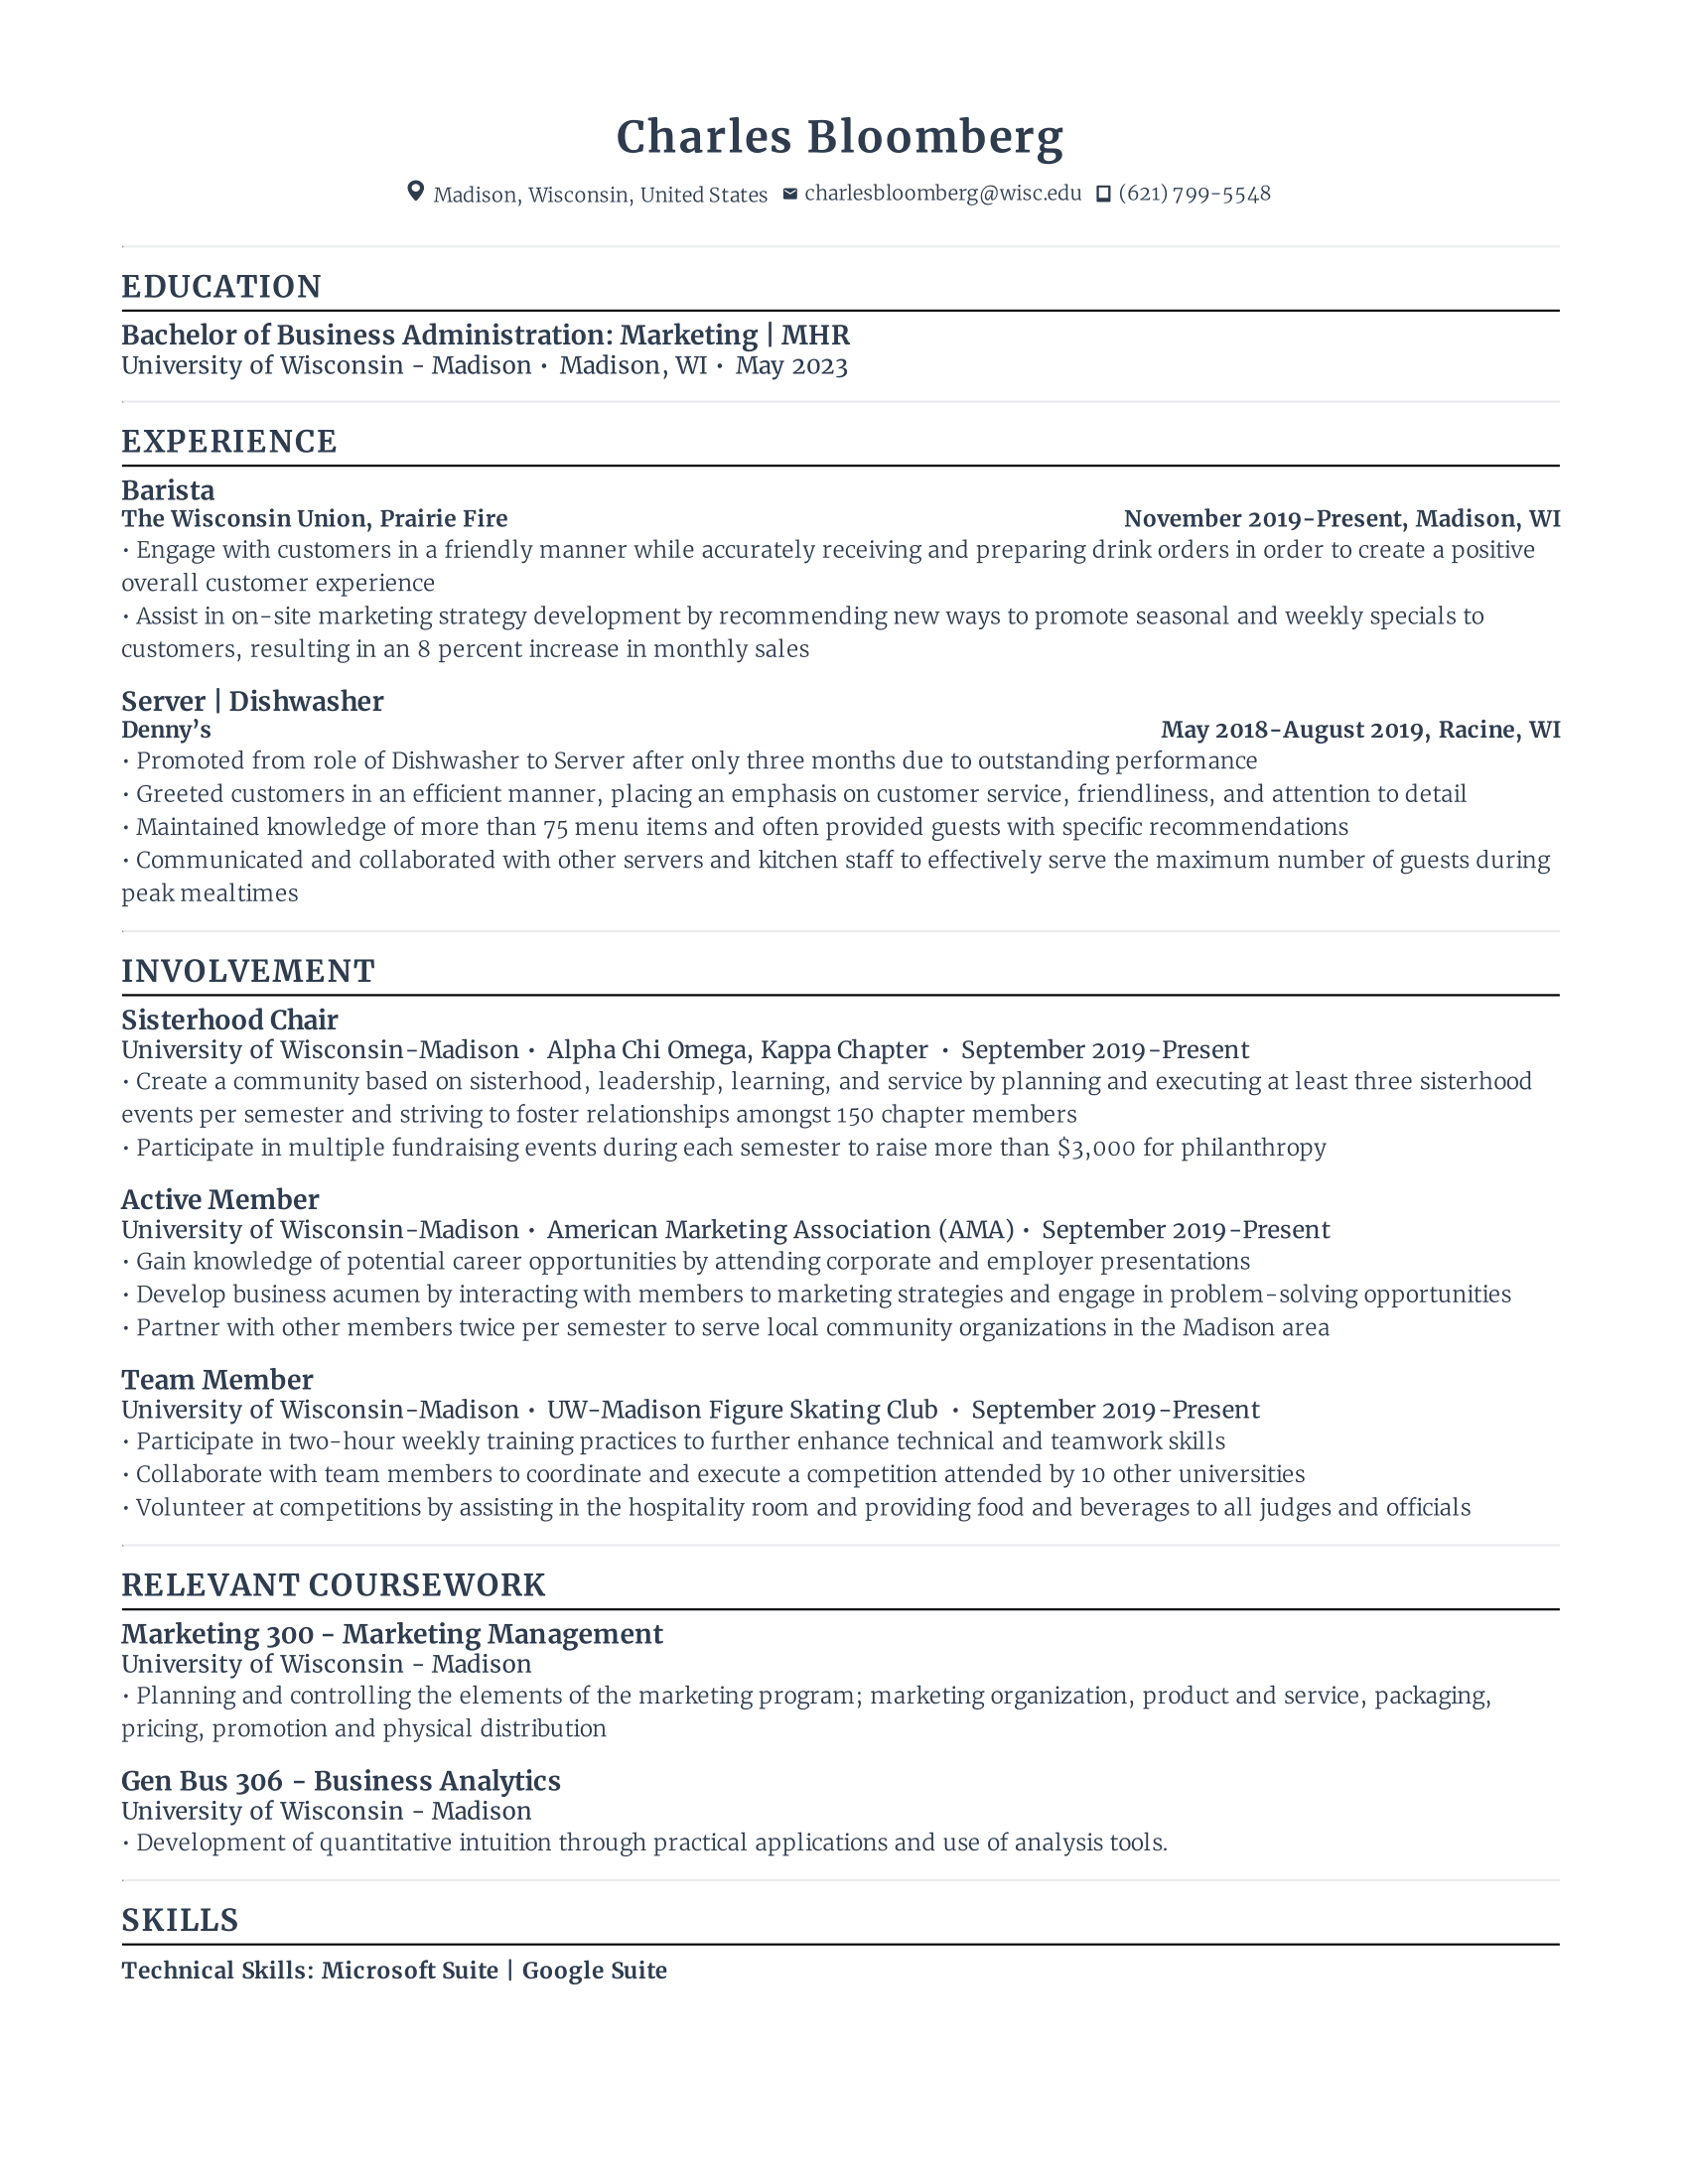 Order Resume Online Without Credit Card